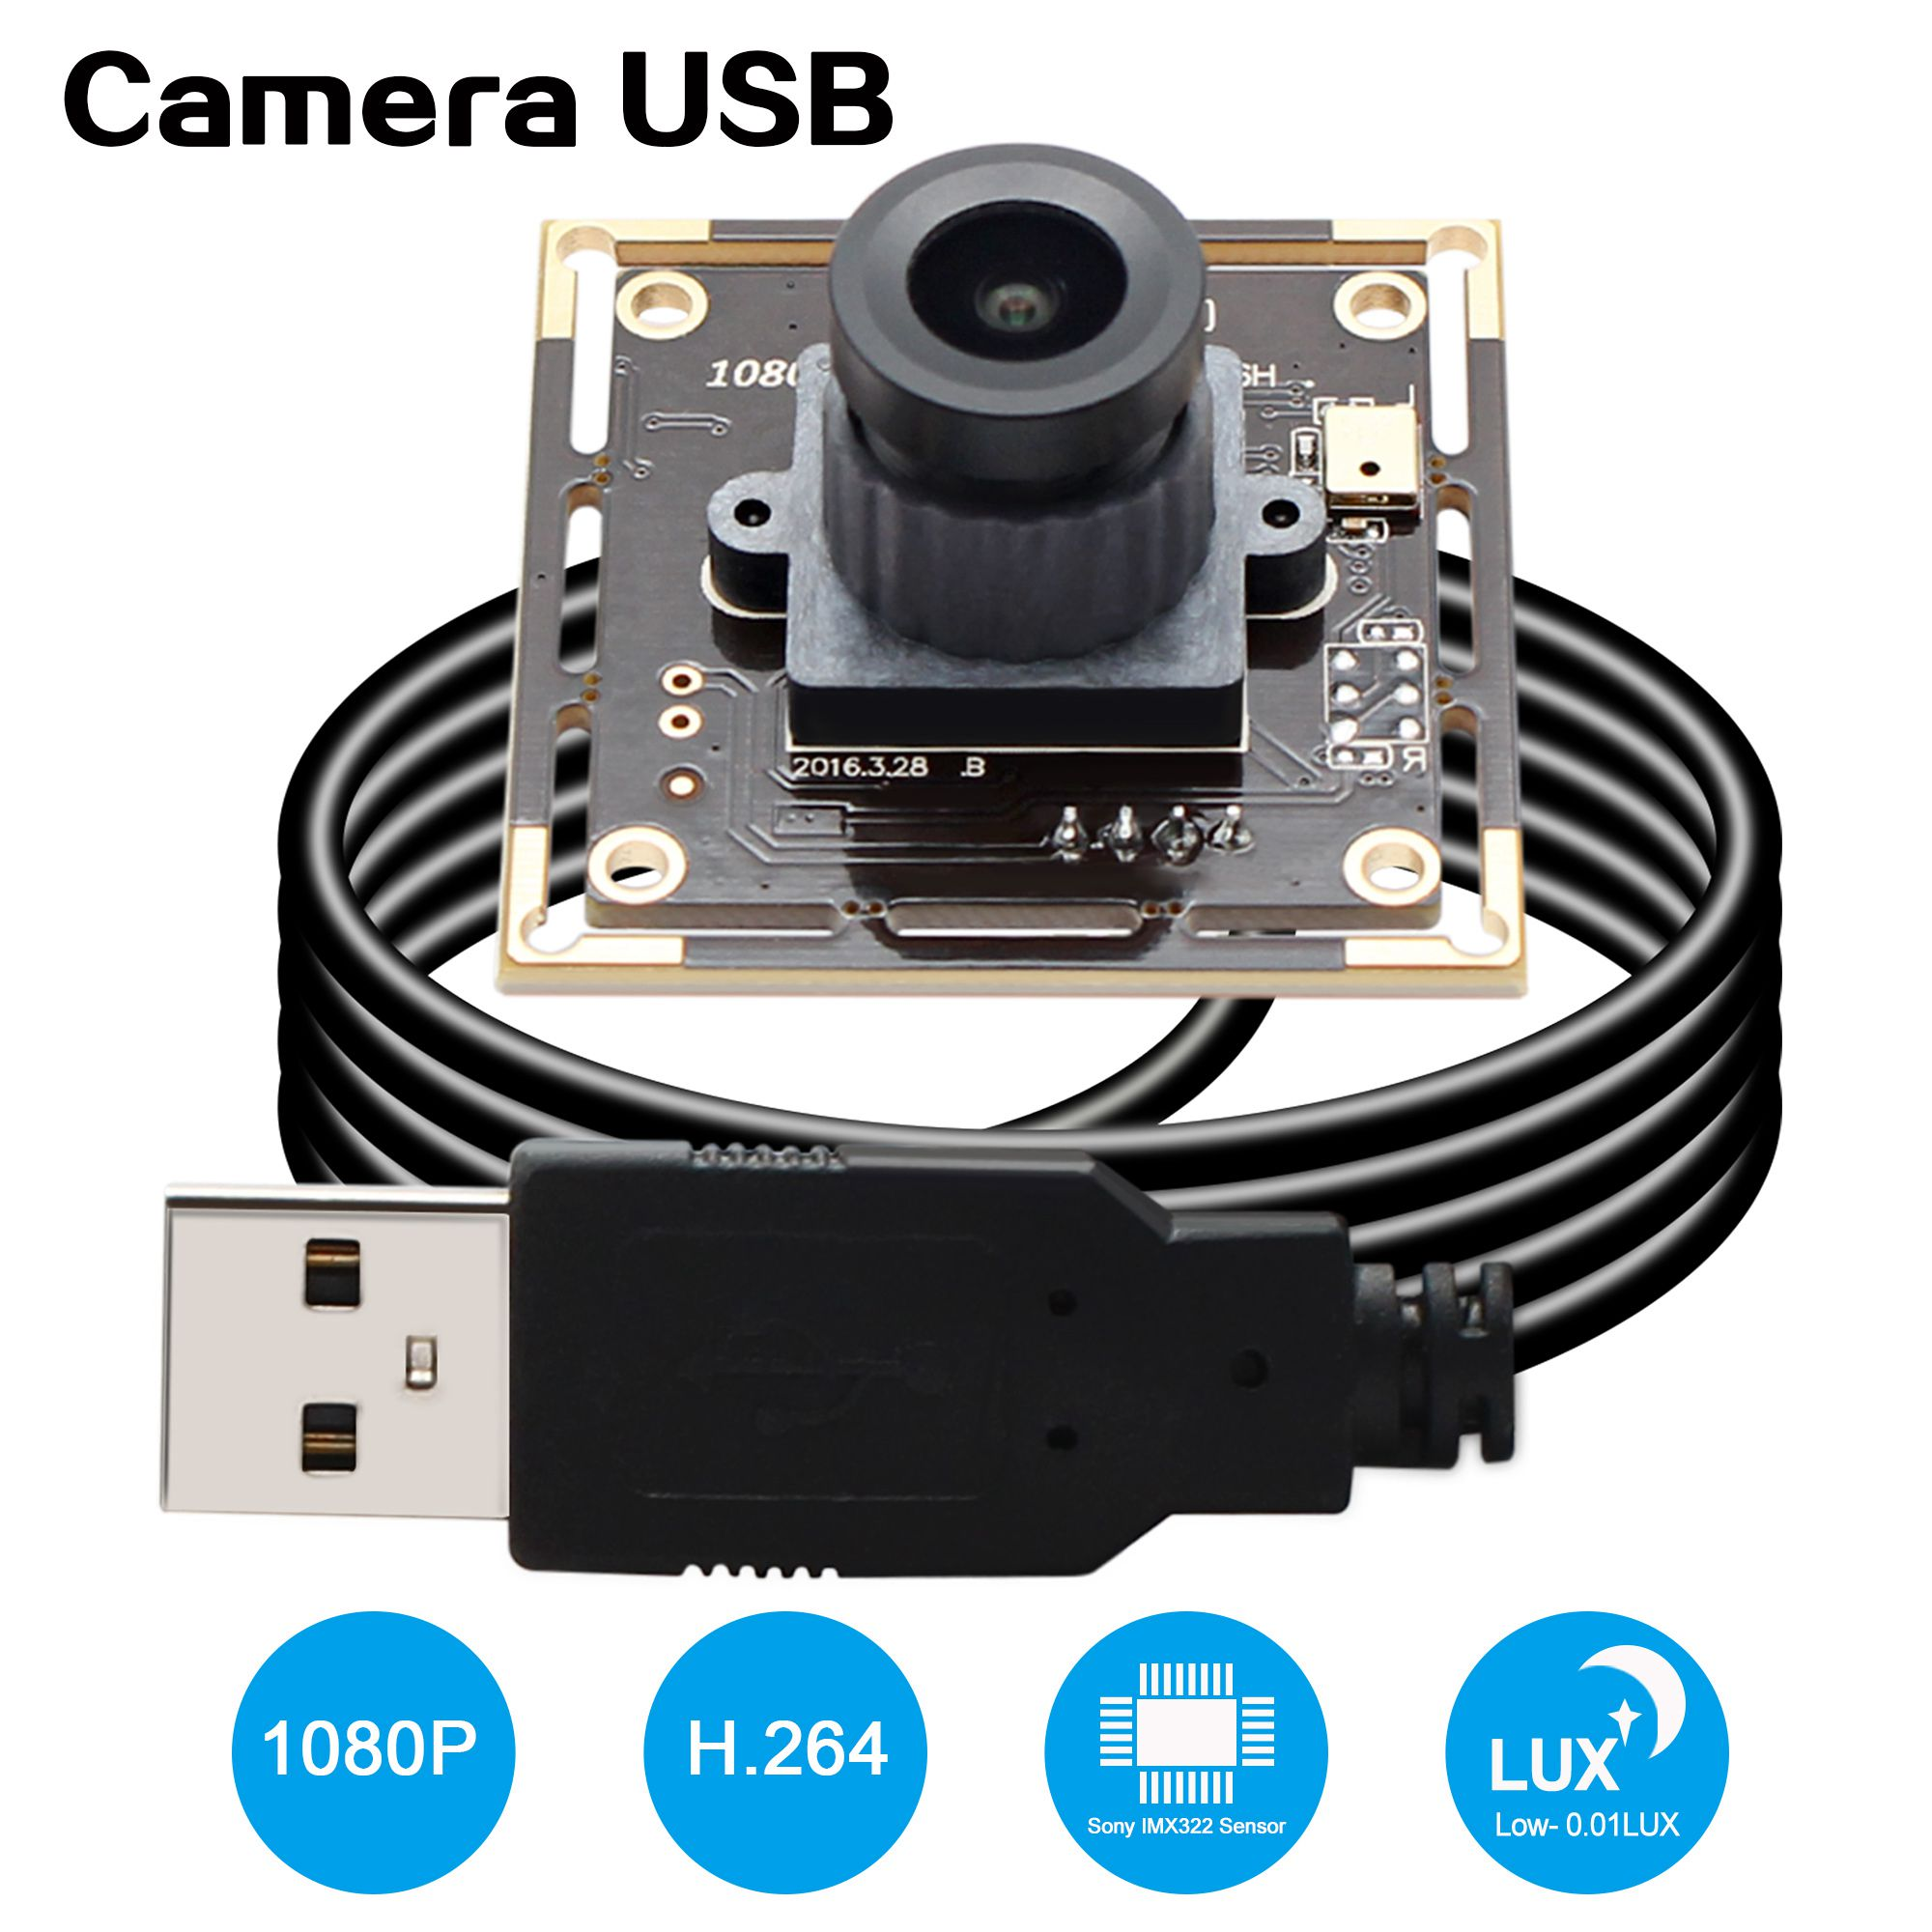 ELP Surveillance Camera 2Megapixel 1080P Sony IMX322 CMOS H.264 USB Camera 2.1mm wide angle lens Low illumination video camera